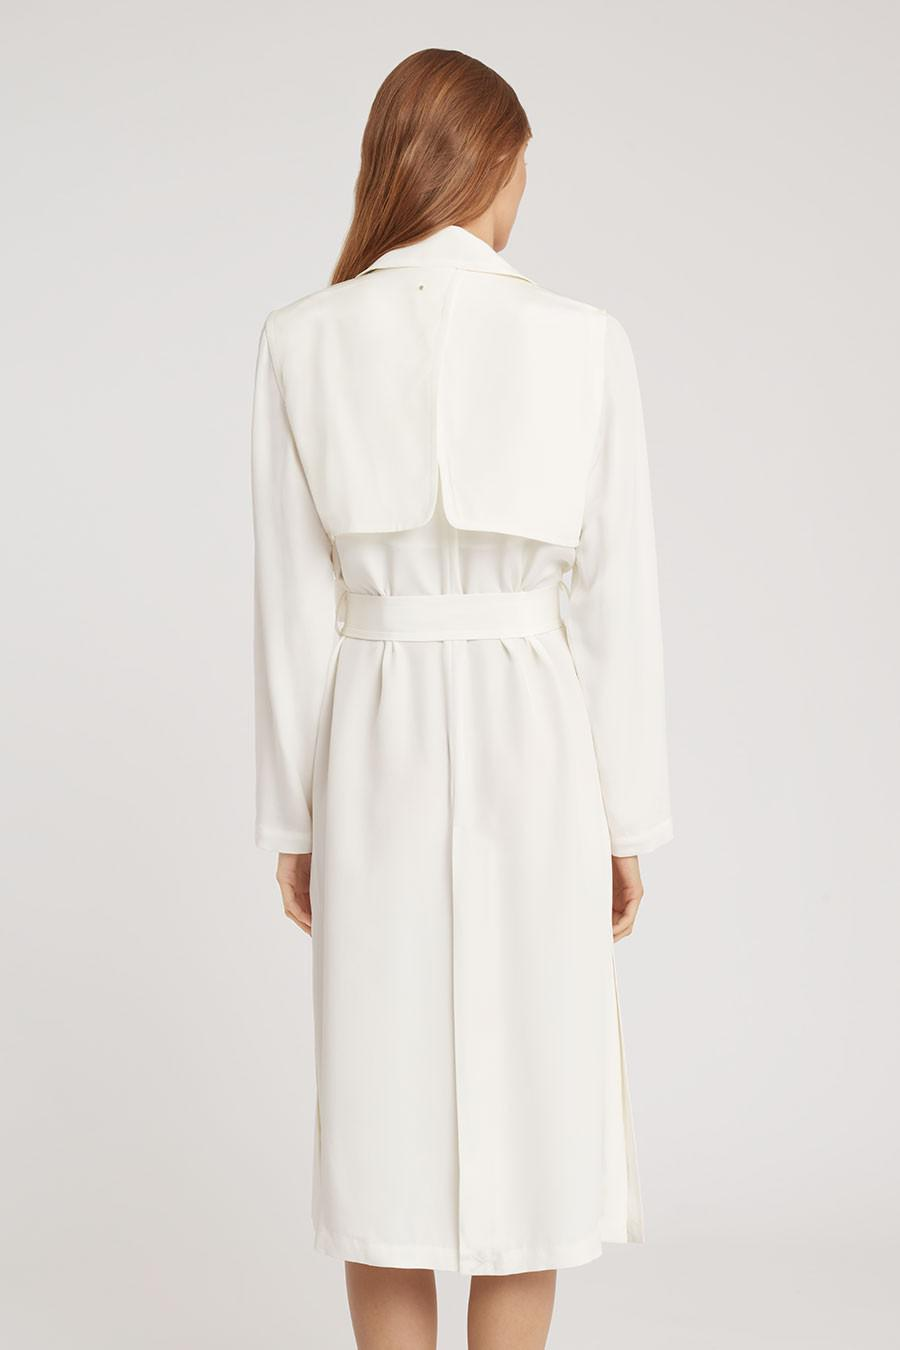 Women's Silk Classic Trench in White | Size: 4